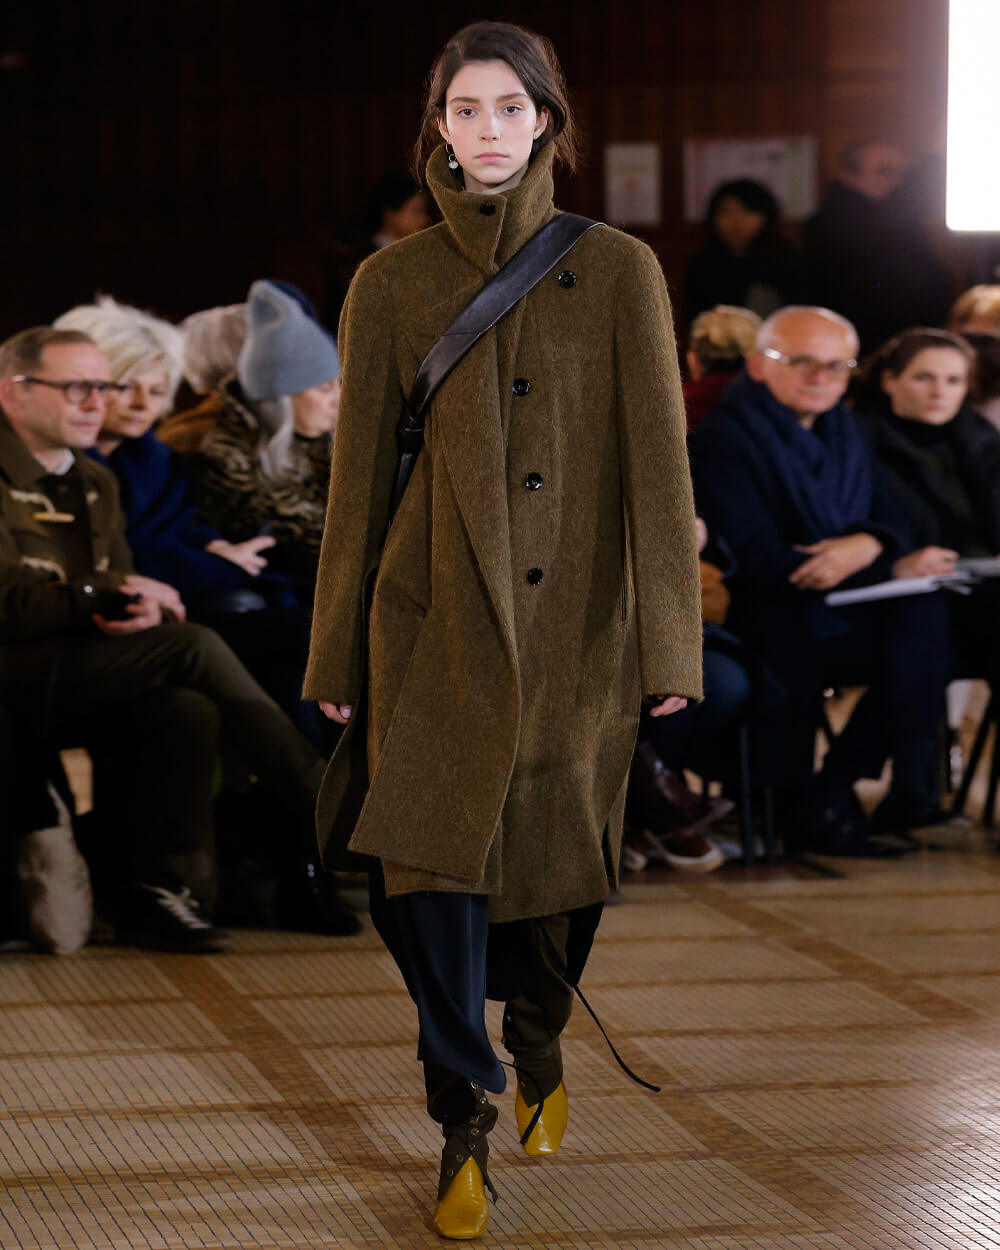 Lemaire Dark Academia look - Fall 2018 Ready-to-Wear Collection